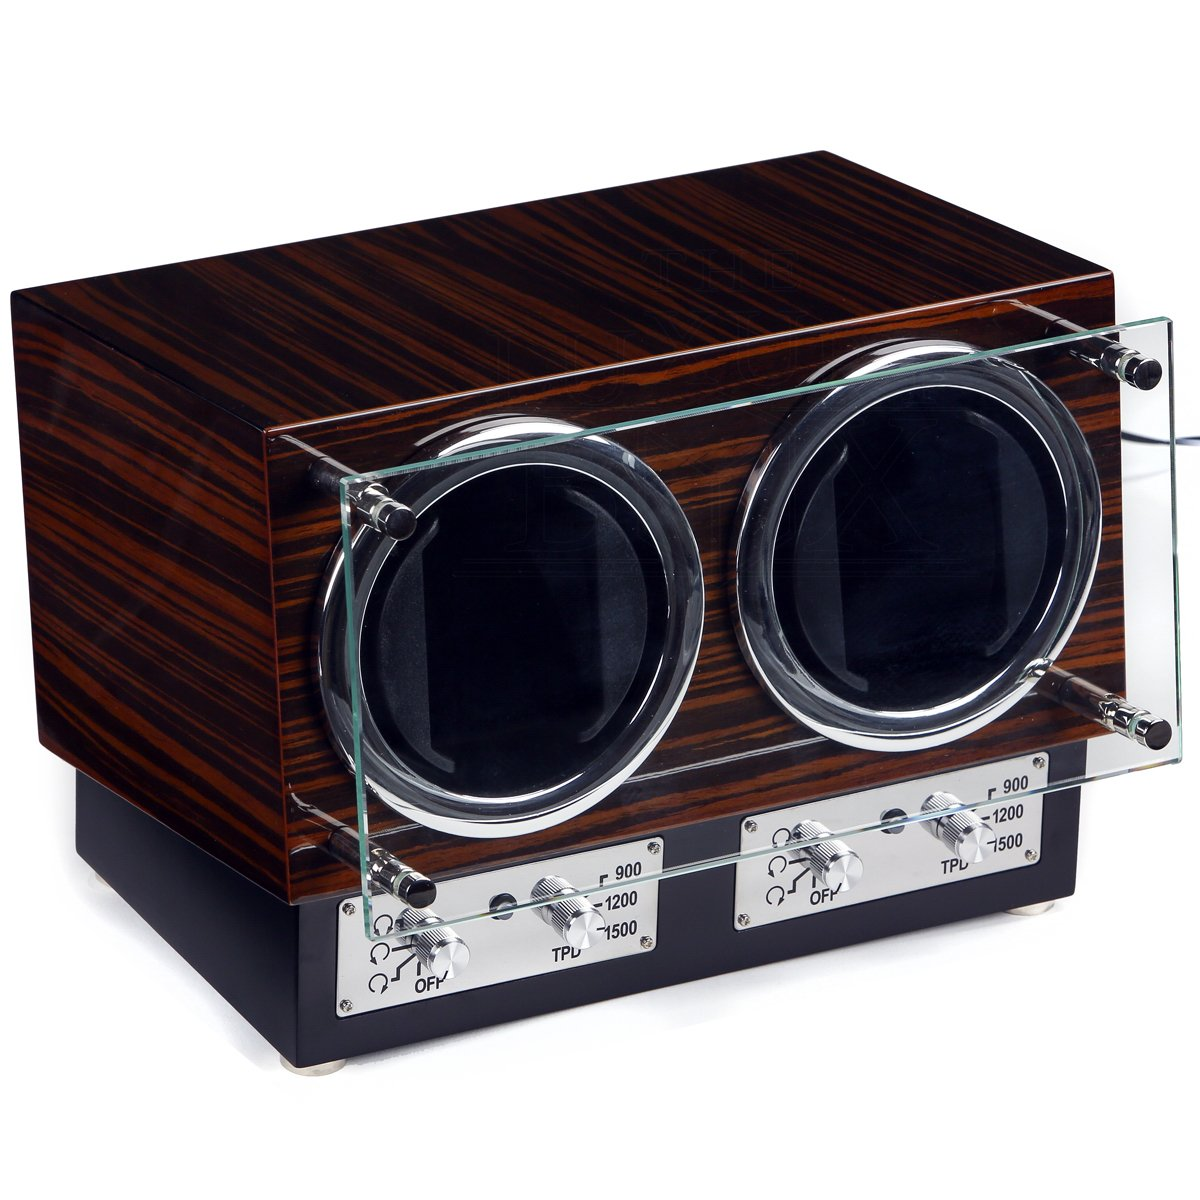 The Luxury Box - Paragon 2 Glass Window Display Double Watch Winder - Color: Ebony by The Luxury Box